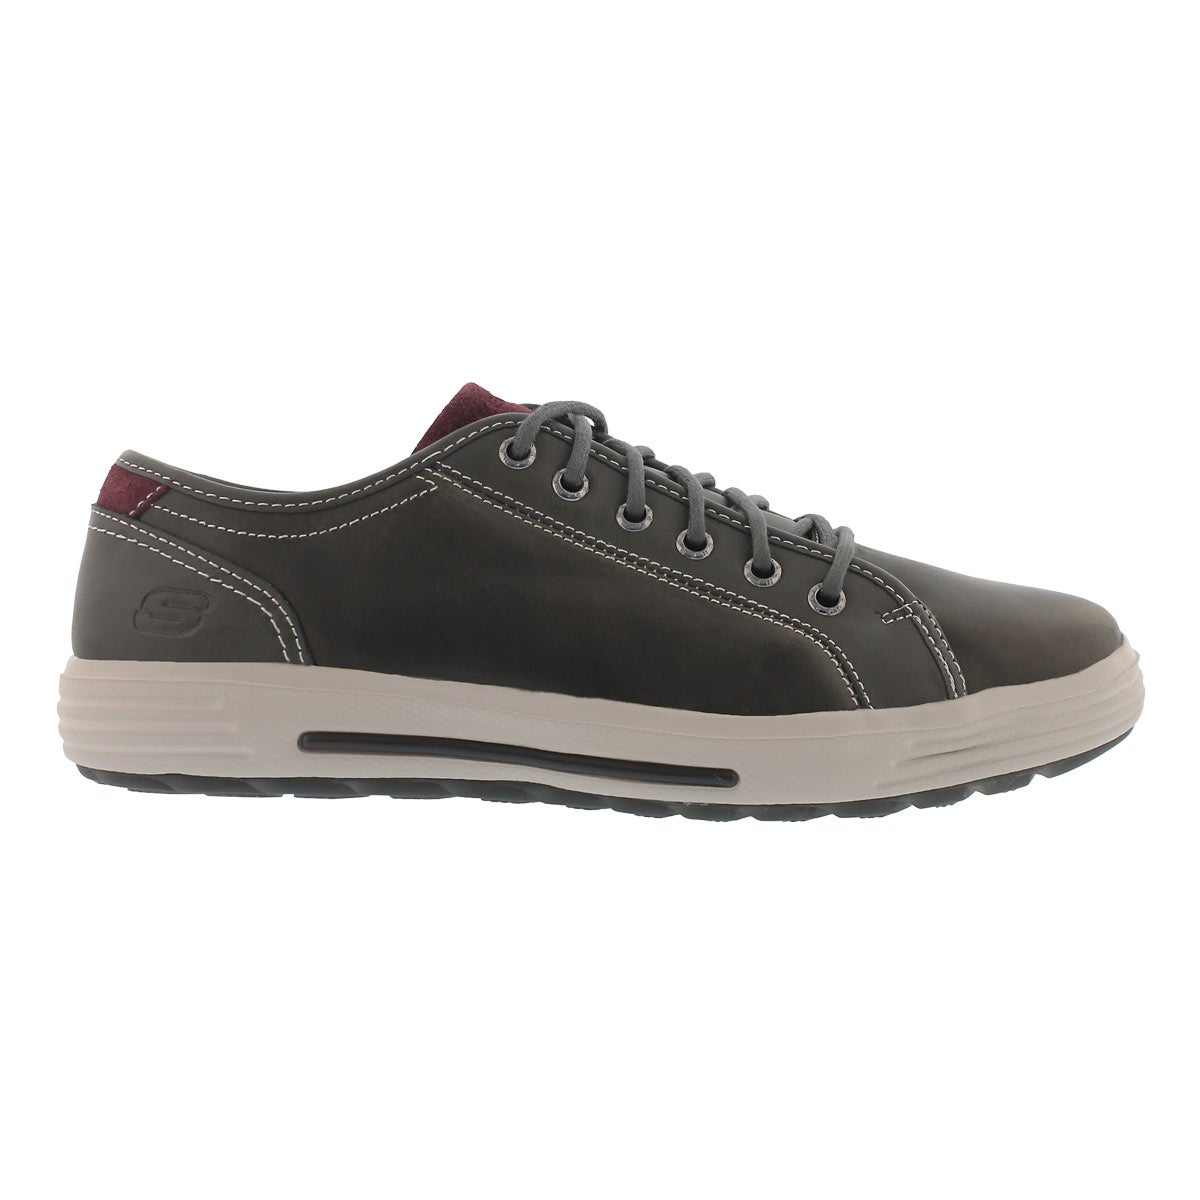 Mns Porter Ressen grey lace up sneaker